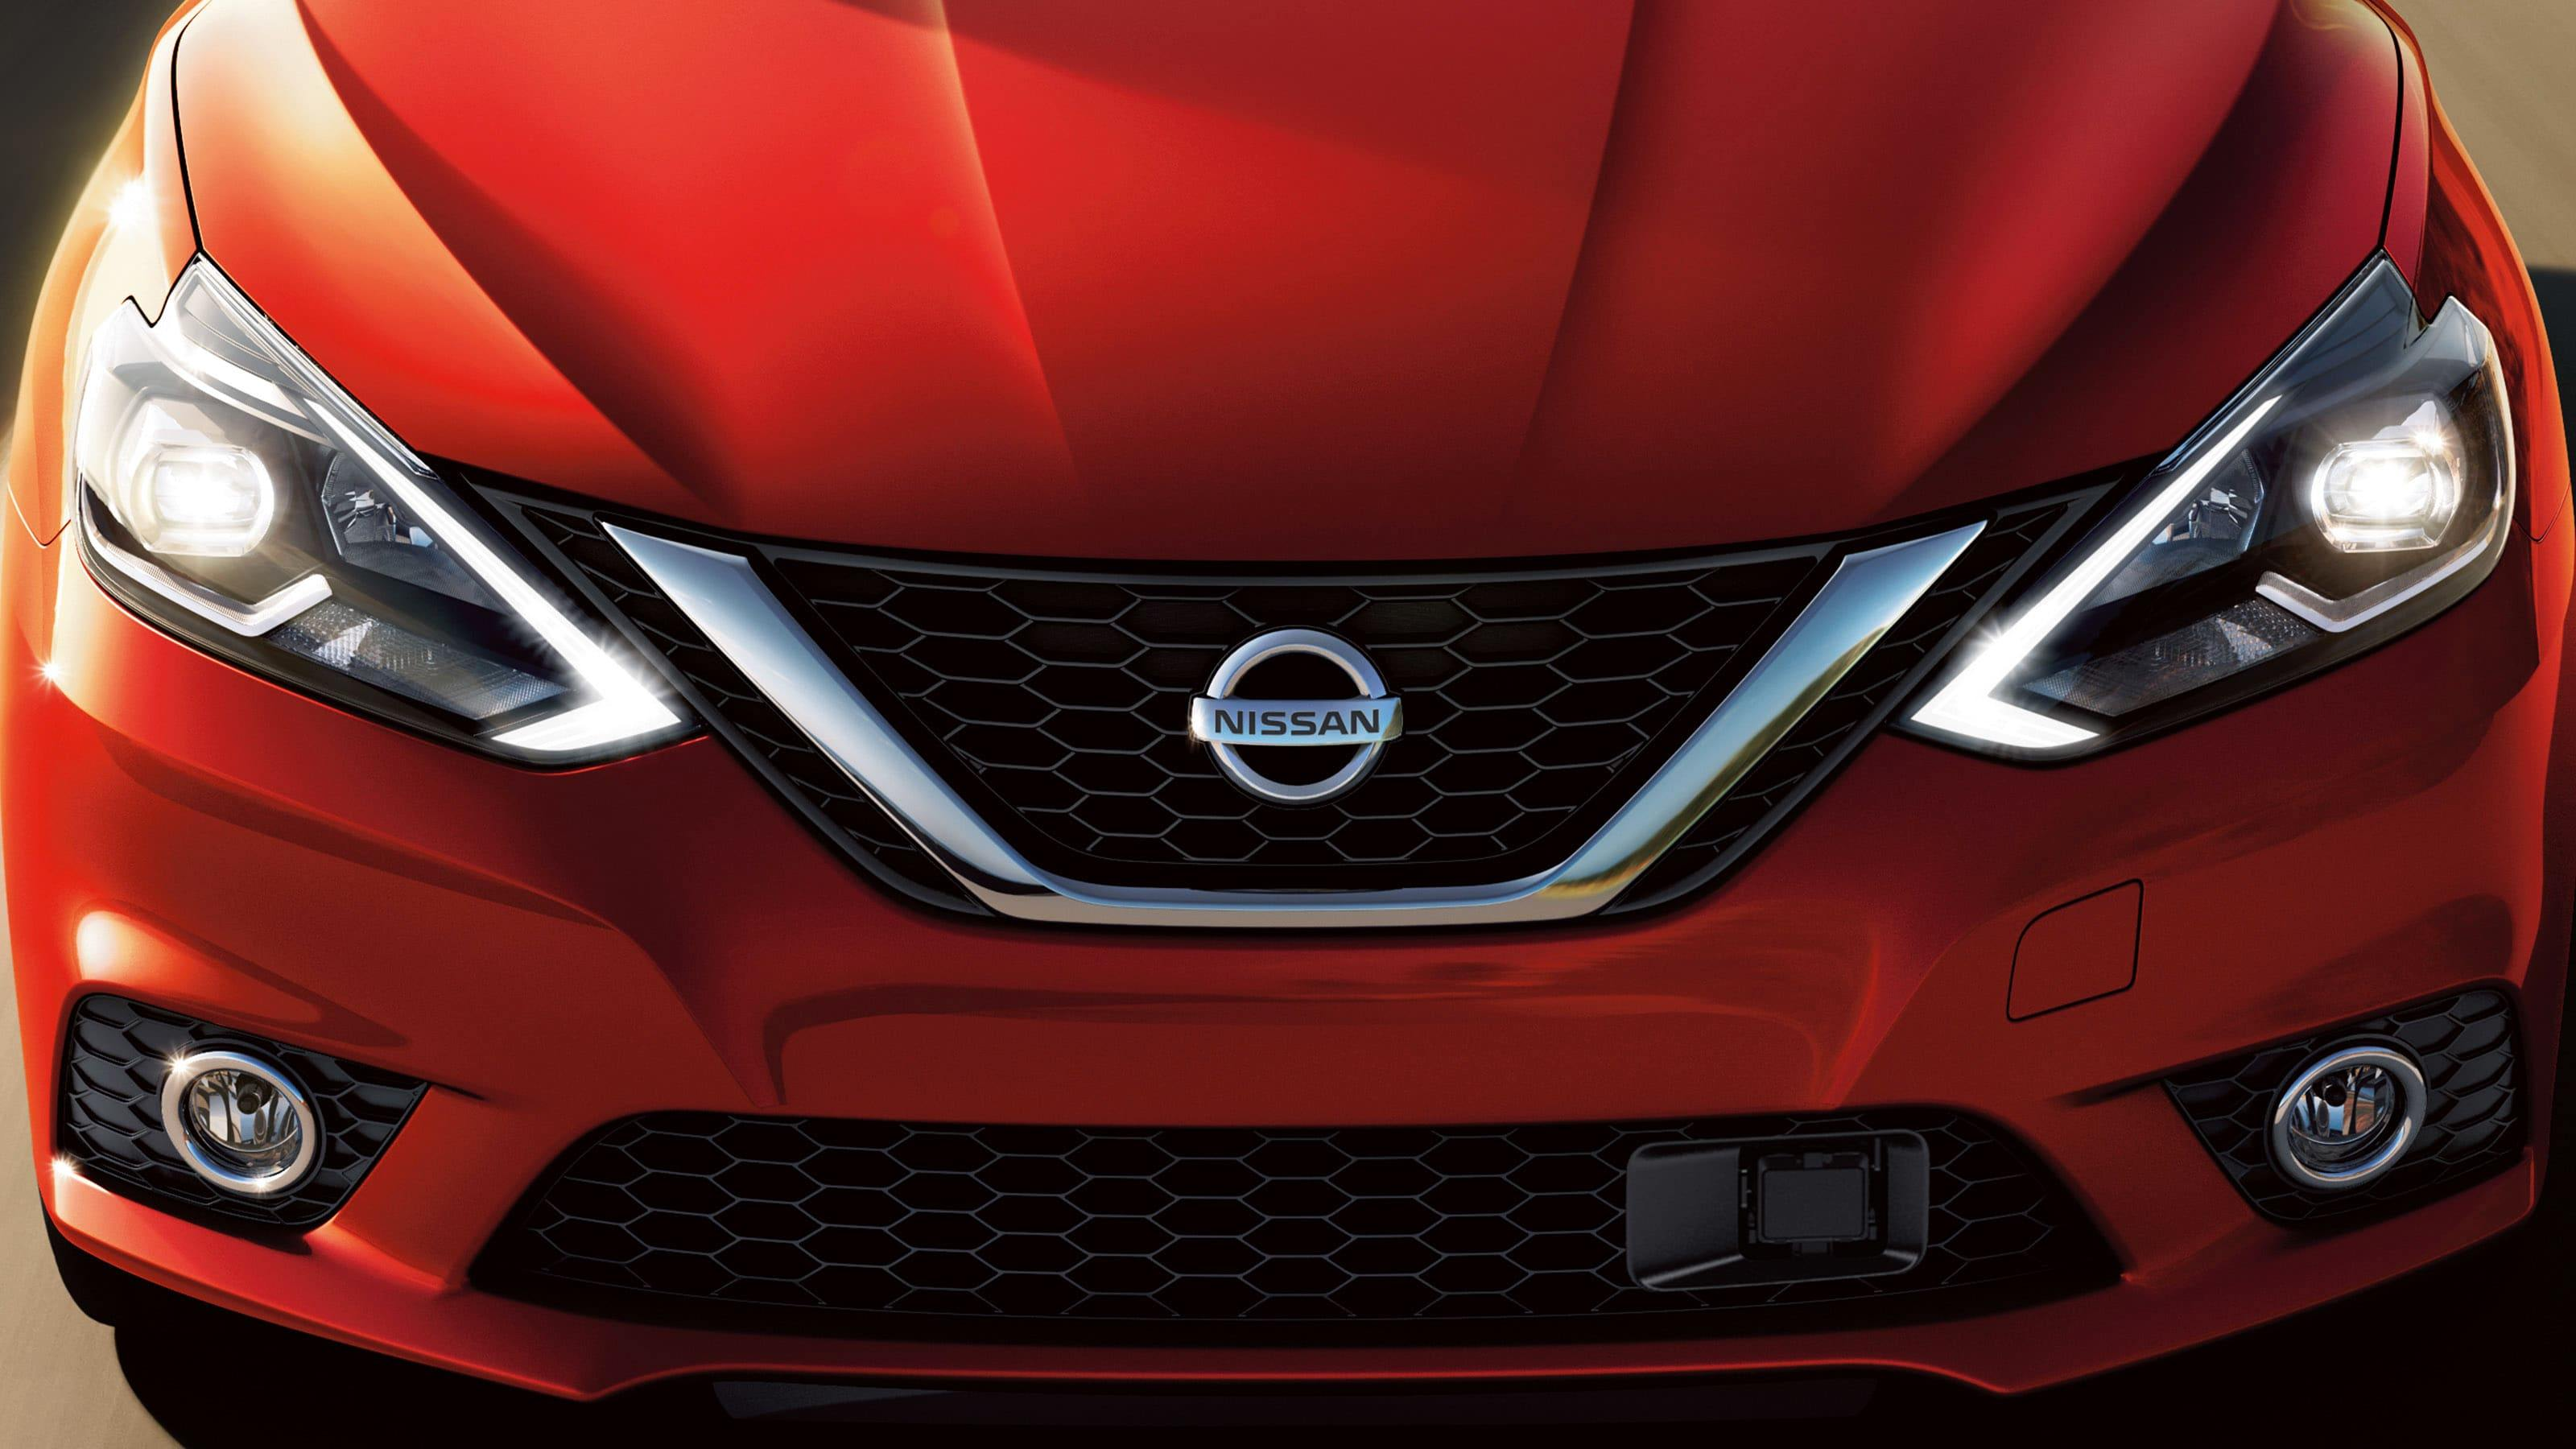 New 2019 Nissan Sentra LED Low-beam Headlights